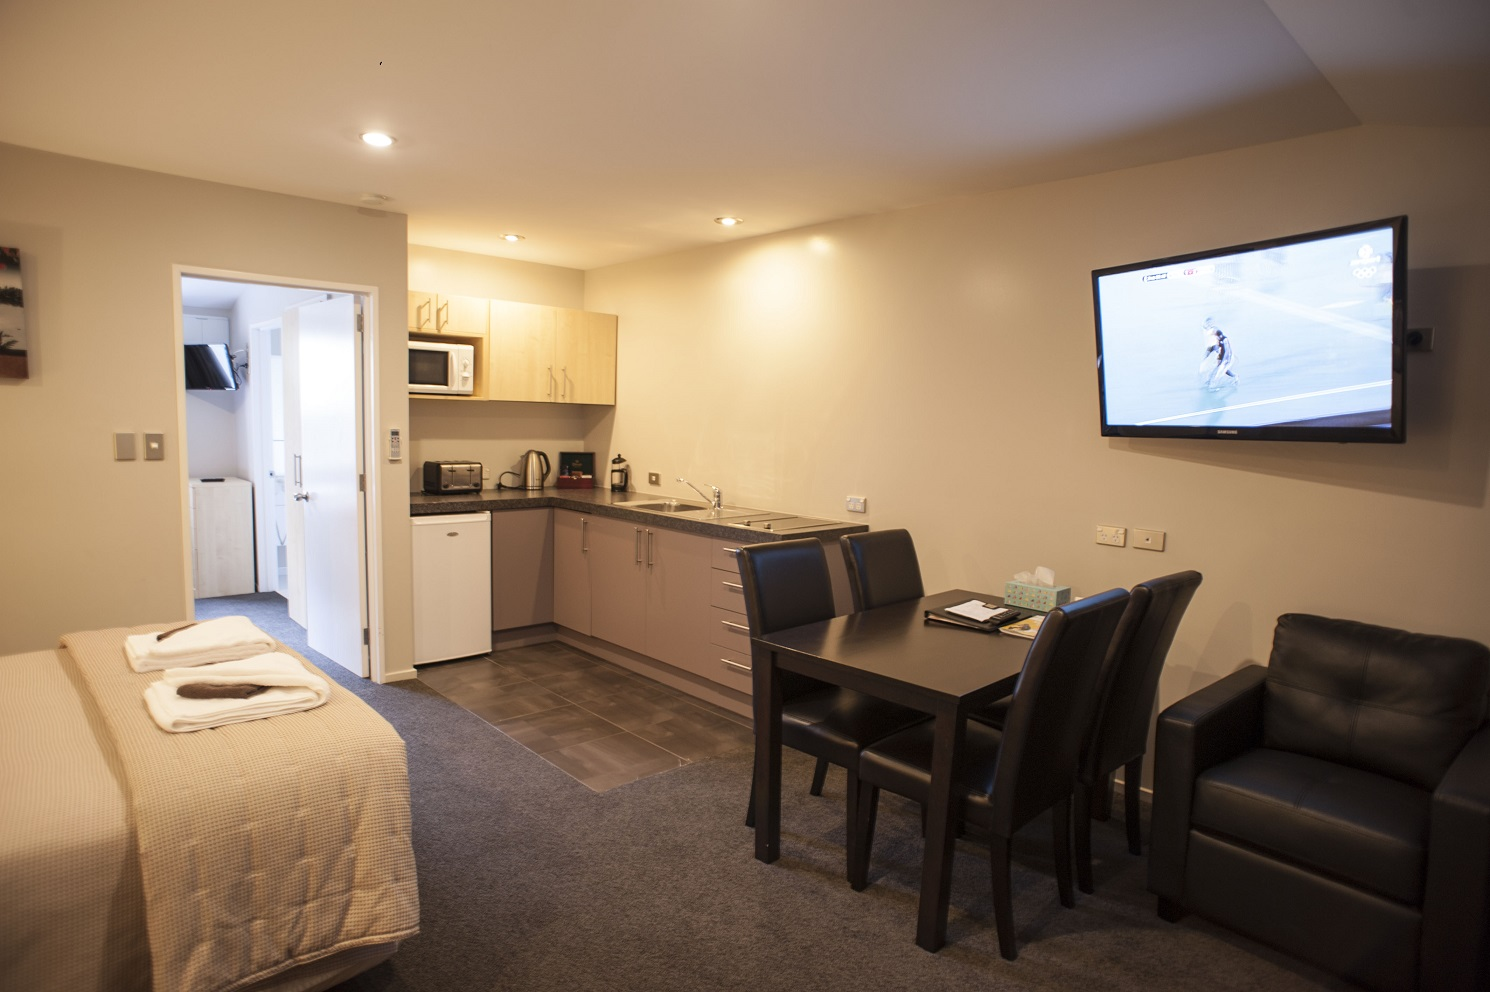 Christchurch luxury apartment qualmark 5 star 1 bedroom for I bedroom apartment